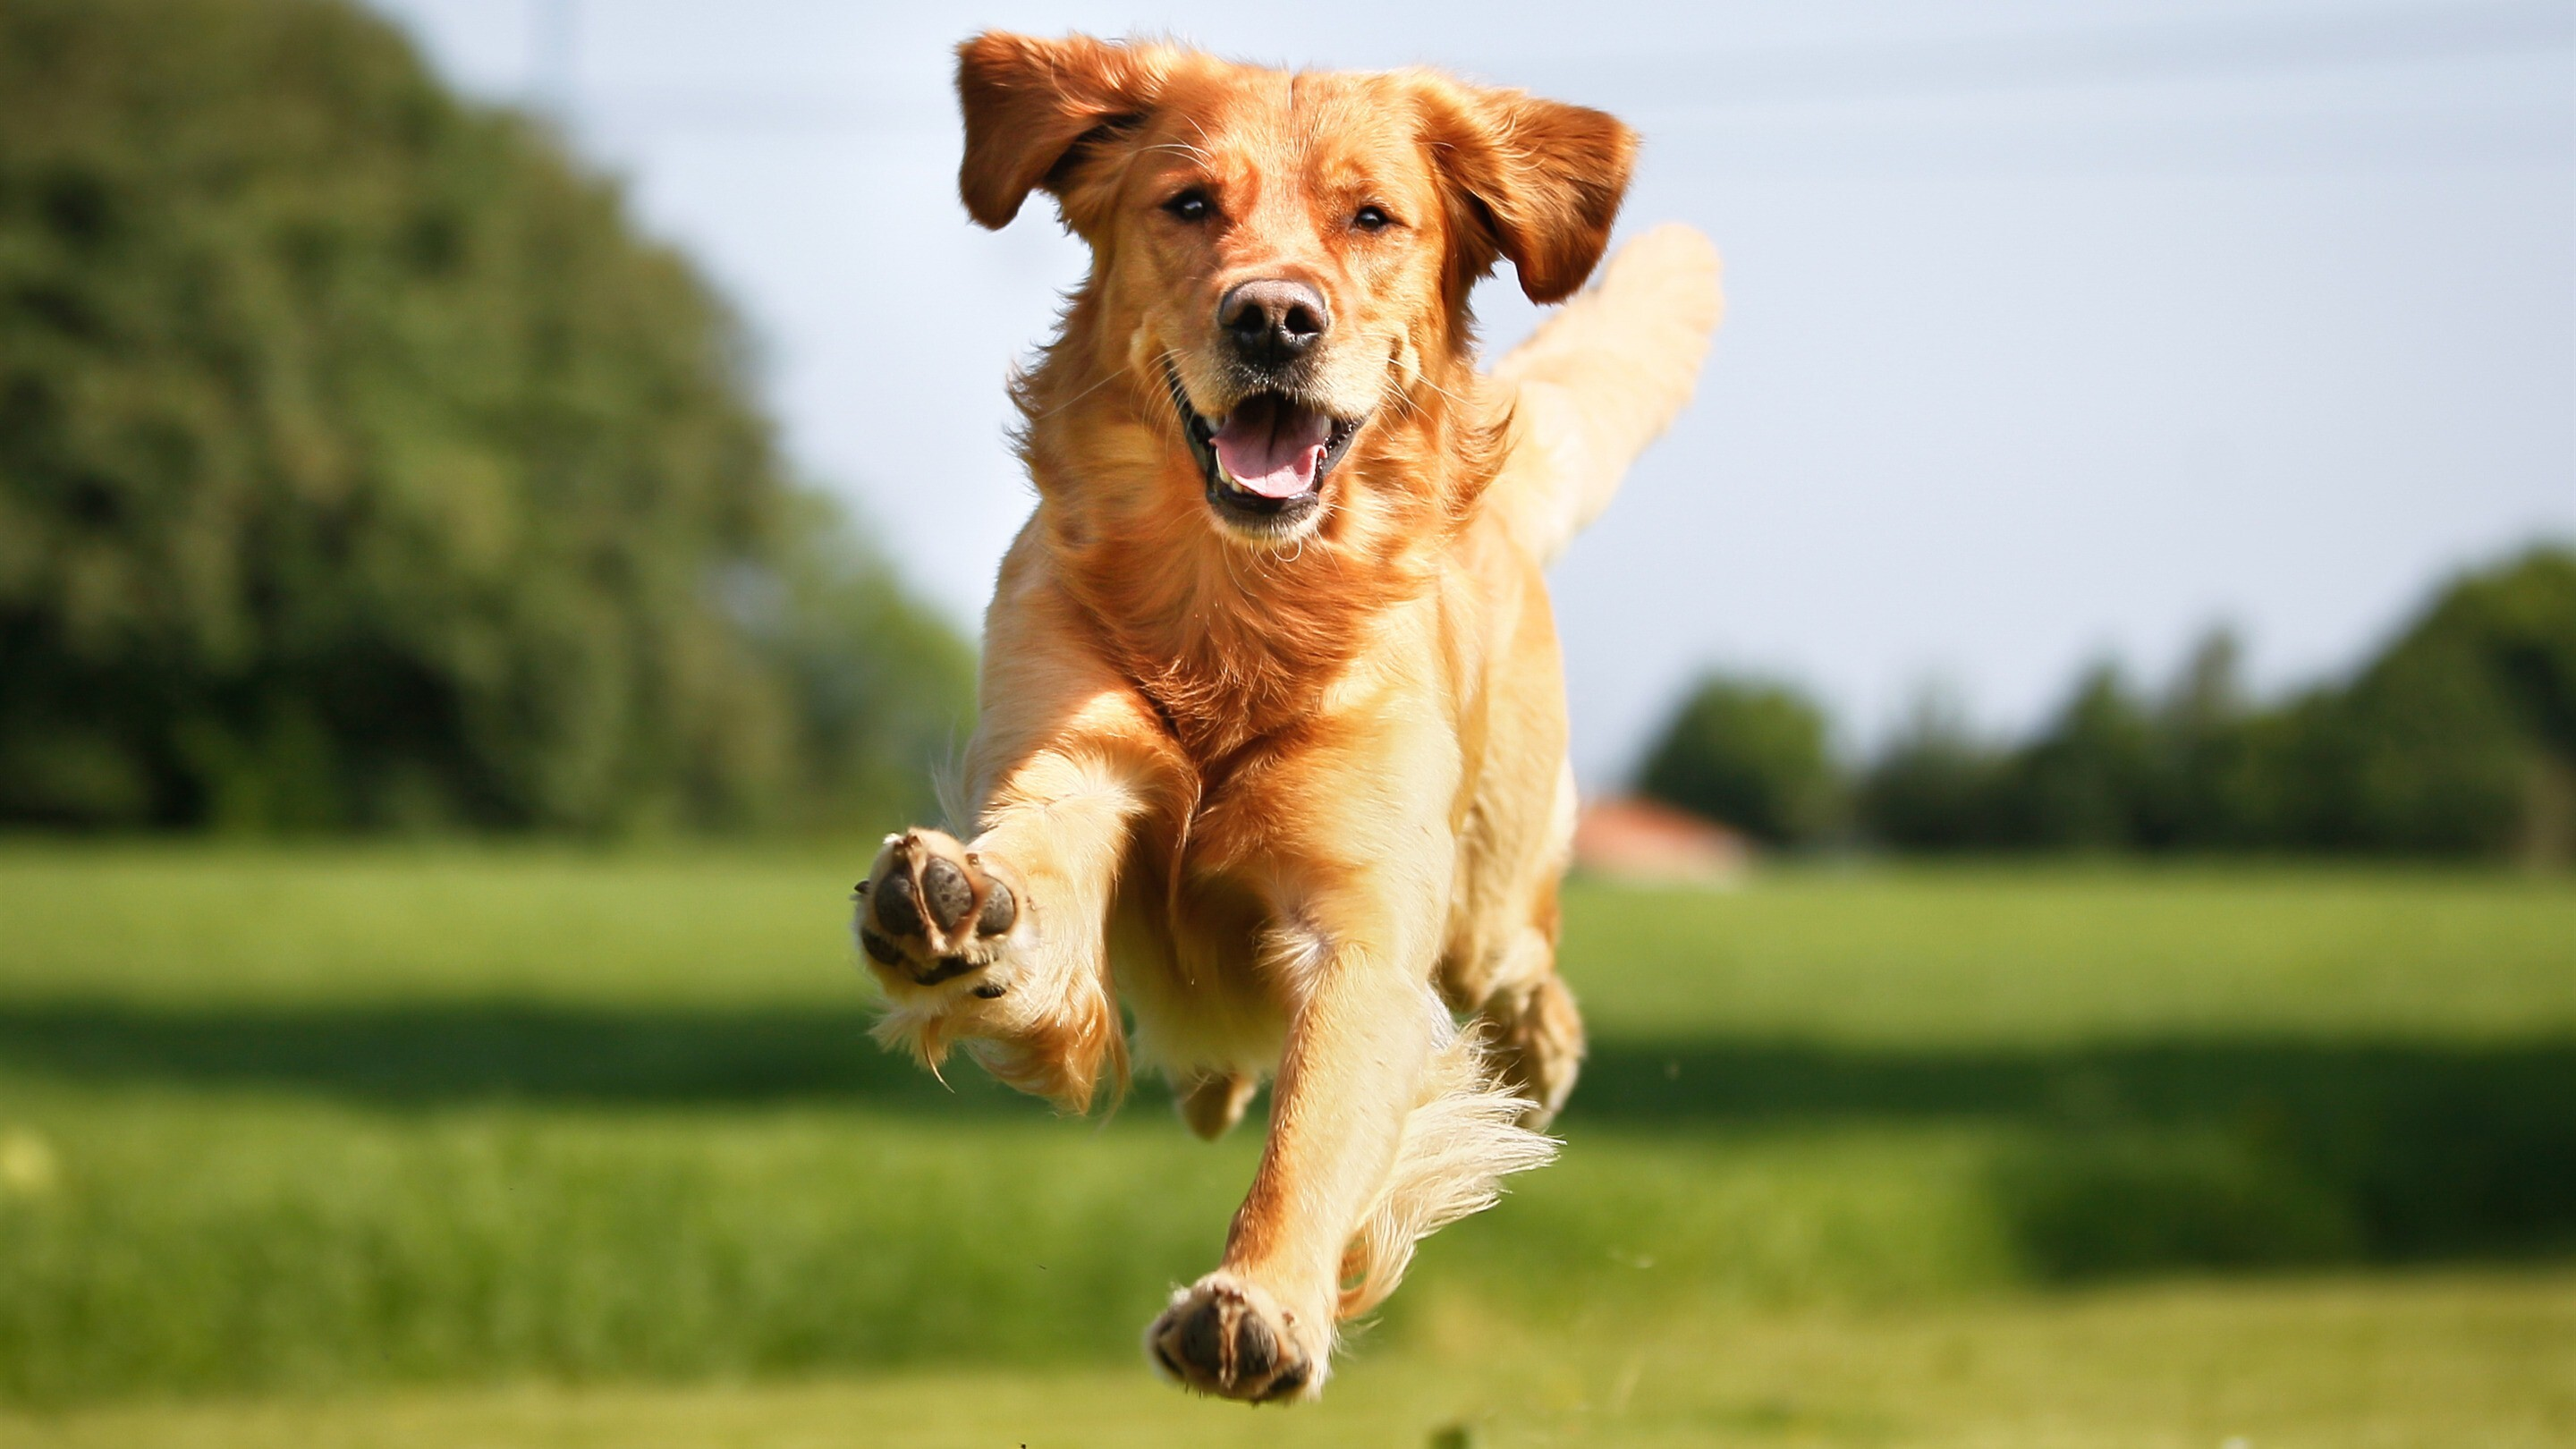 Dog Running On Grass Image Hd Wallpapers